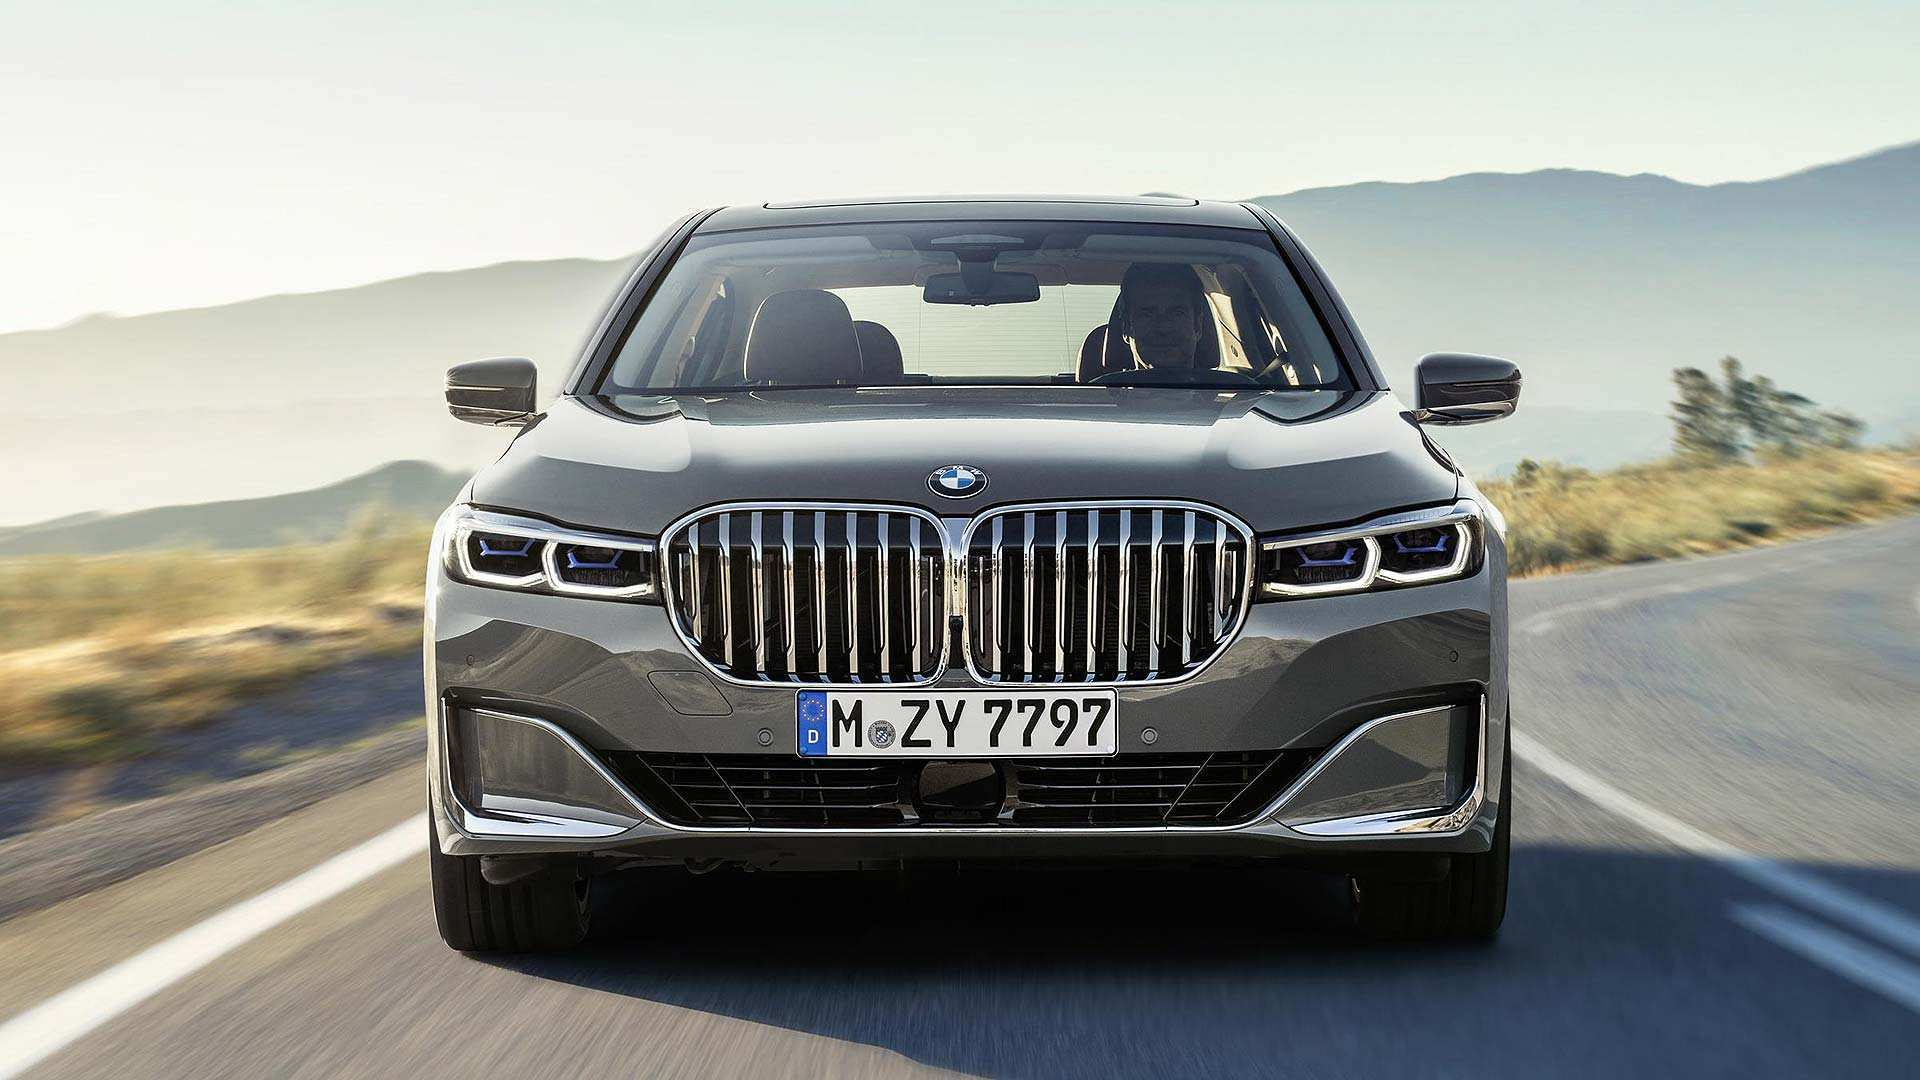 95 Best Review 2019 Bmw 7 Series Lci Exterior and Interior for 2019 Bmw 7 Series Lci